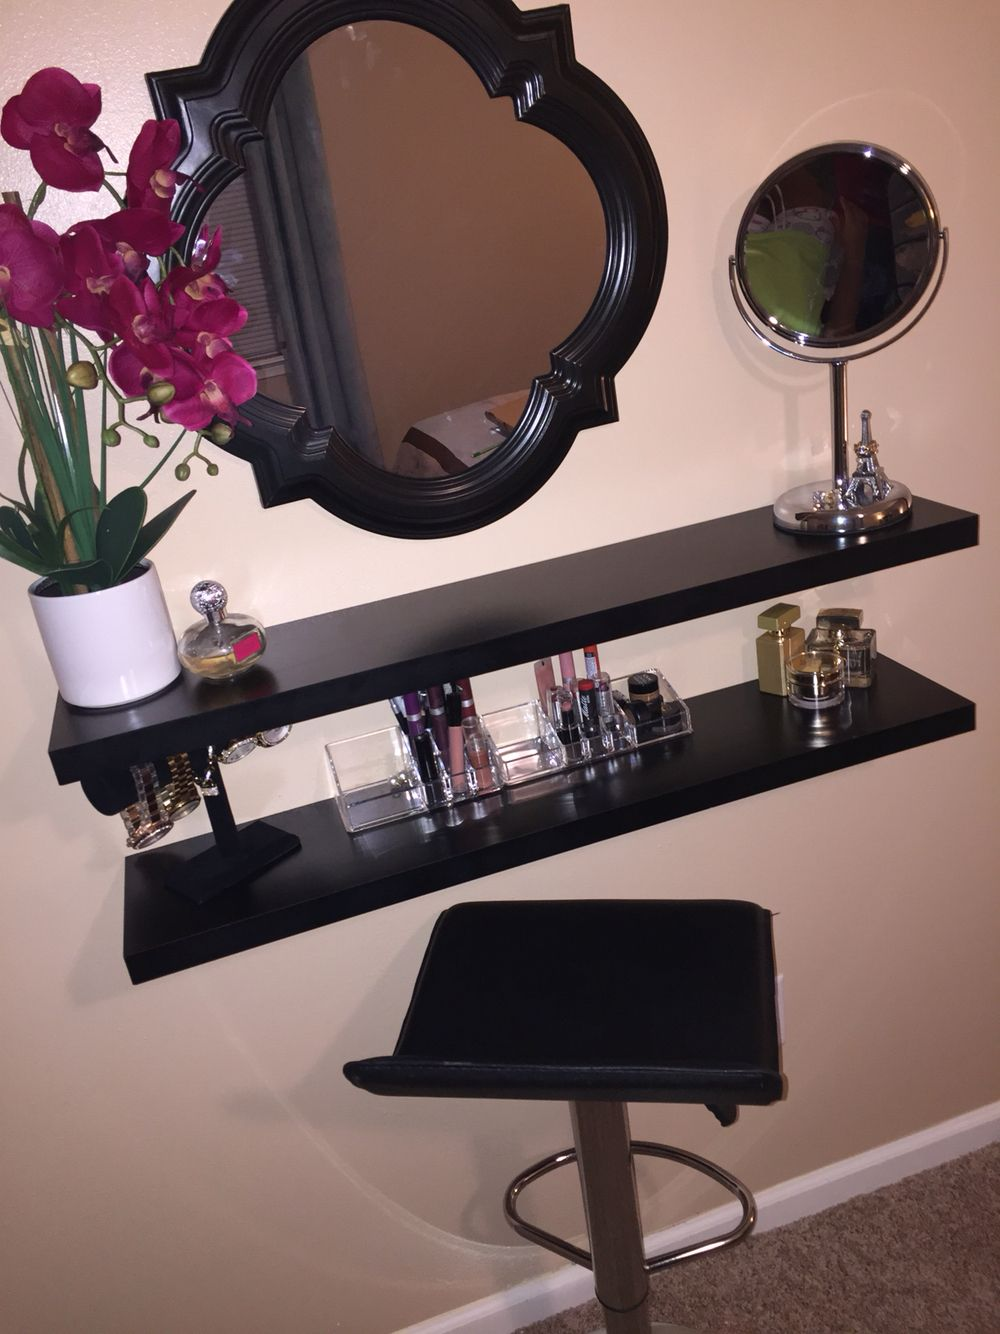 very own diy vanity made using floating shelves crafts makeup shelf laying vinyl flooring over built wall desk bracket size for heavy duty garage storage giant christmas bows